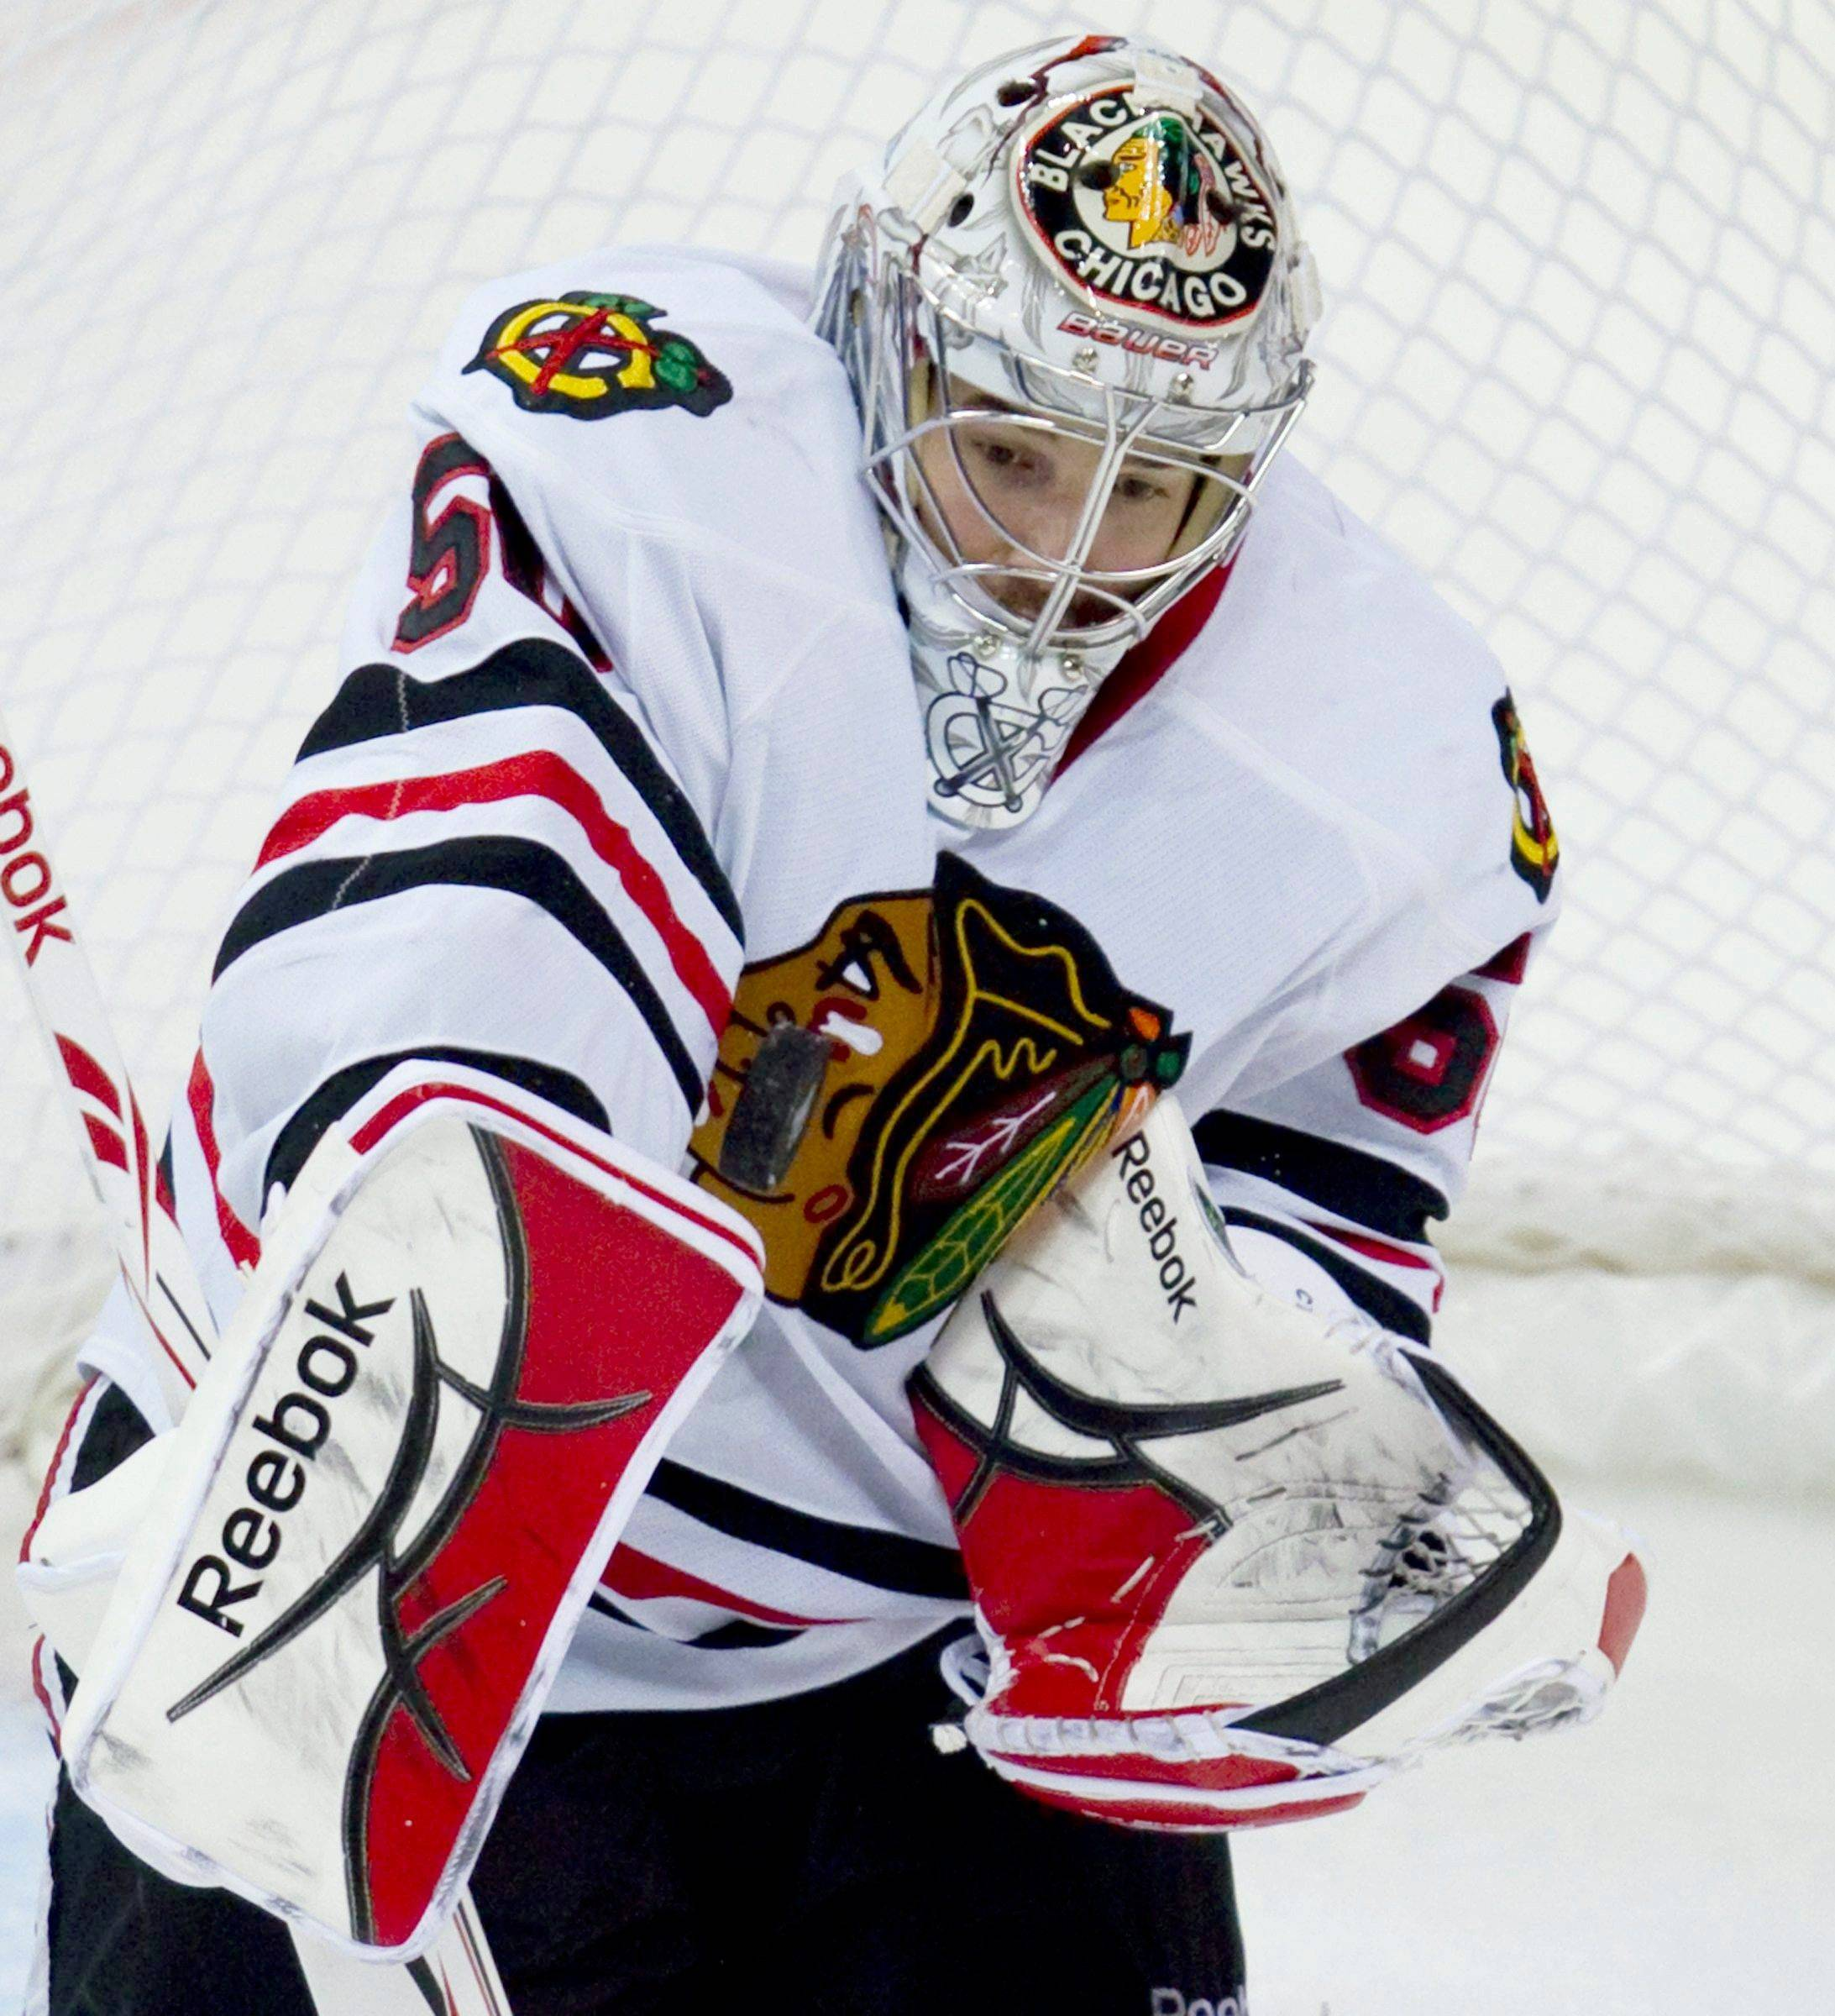 Blackhawks goalie Corey Crawford makes a save during the second period against the Vancouver Canucks in Game 7 Tuesday.